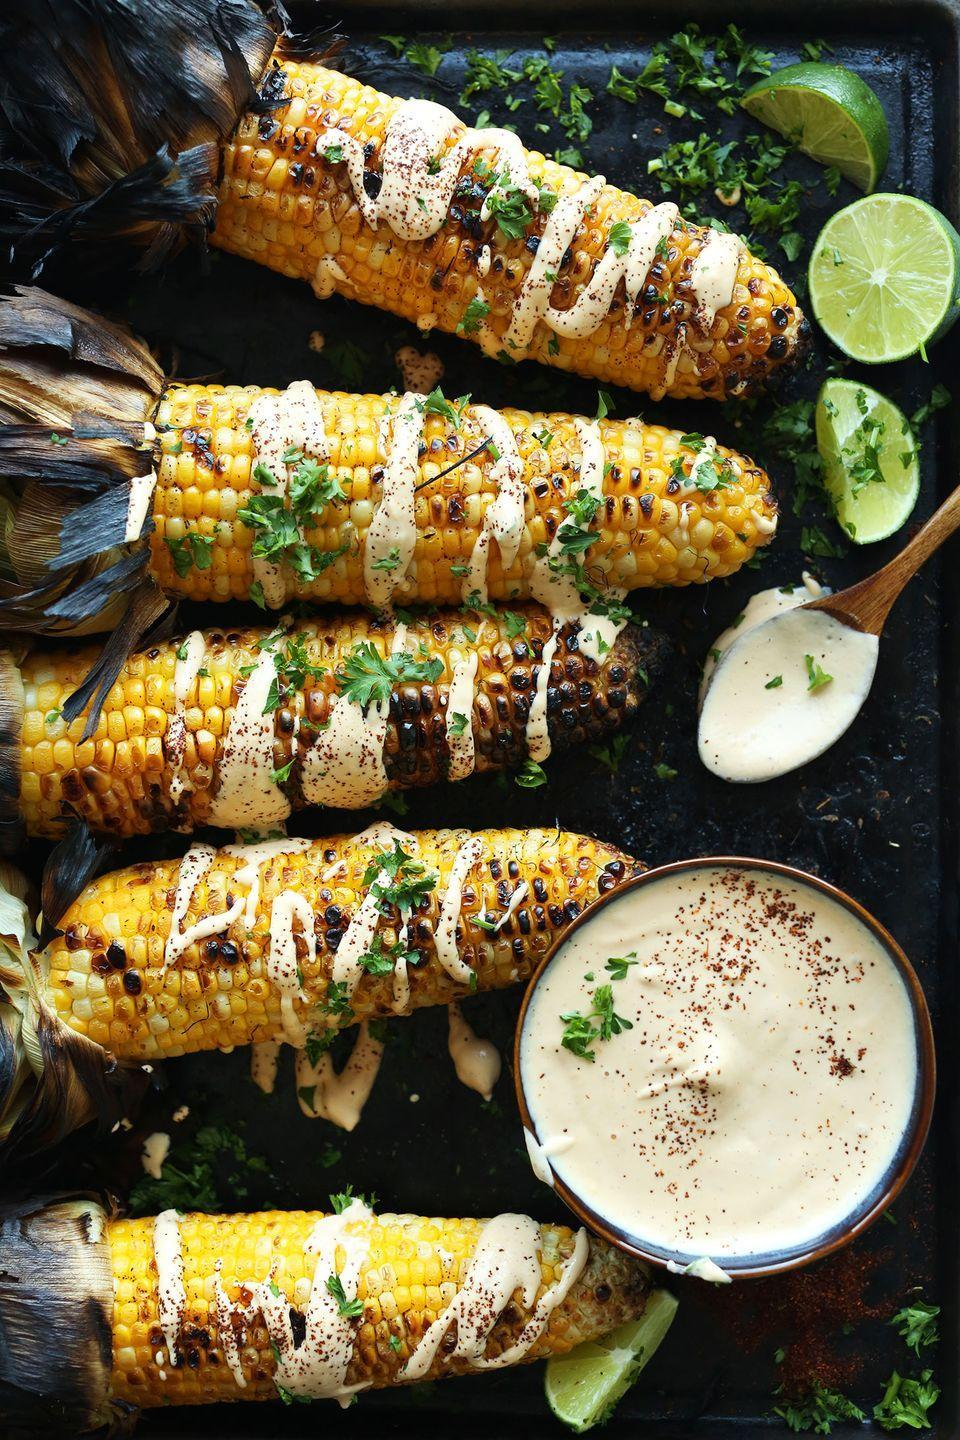 """<p>Drizzle charred corn on the cob with lime juice, sriracha aioli, and fresh herbs for a low effort, flavor-packed side. </p><p><a href=""""https://minimalistbaker.com/grilled-corn-sriracha-aioli/"""" rel=""""nofollow noopener"""" target=""""_blank"""" data-ylk=""""slk:Get the recipe."""" class=""""link rapid-noclick-resp"""">Get the recipe. </a></p>"""